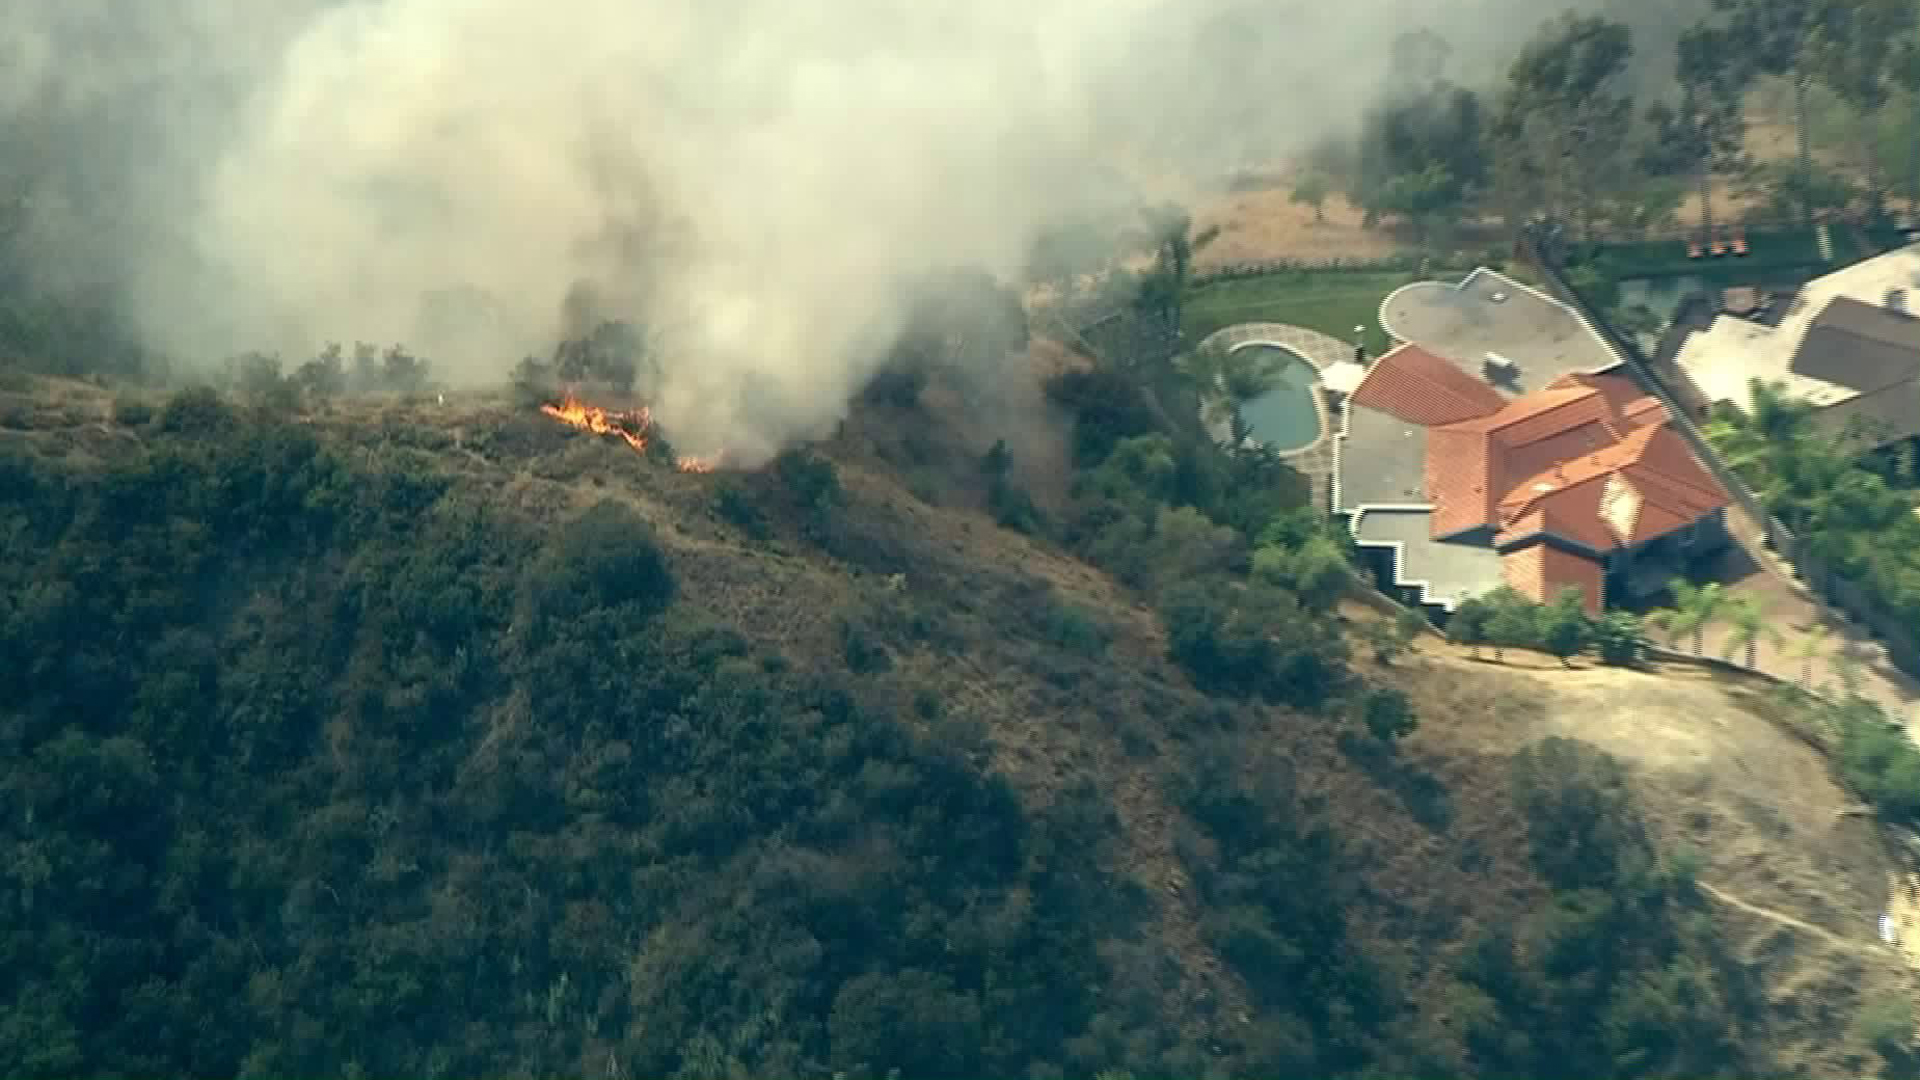 Flames burned near a home as the Portola Fire burned in the Beverly Crest area on June 12, 2018. (Credit: KTLA)